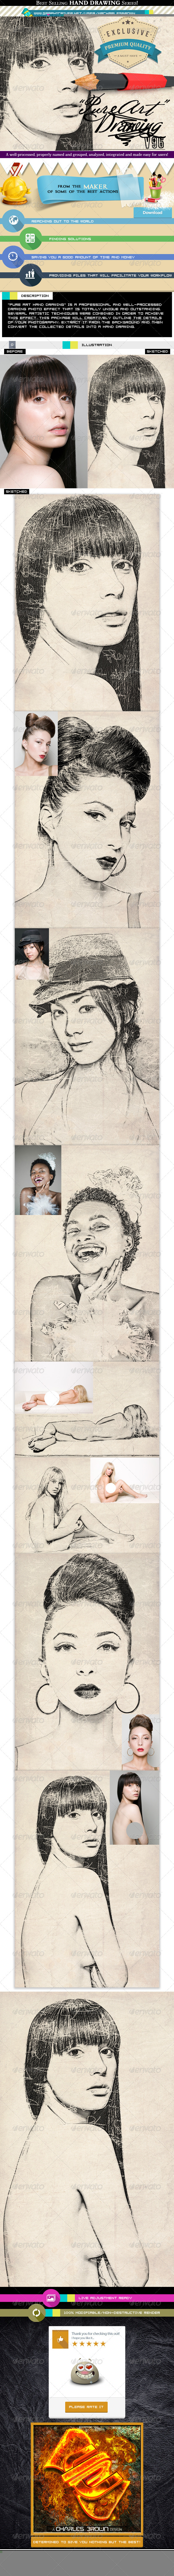 GraphicRiver Pure Art Hand Drawing 96 Celebrity Autograph Art 8353797